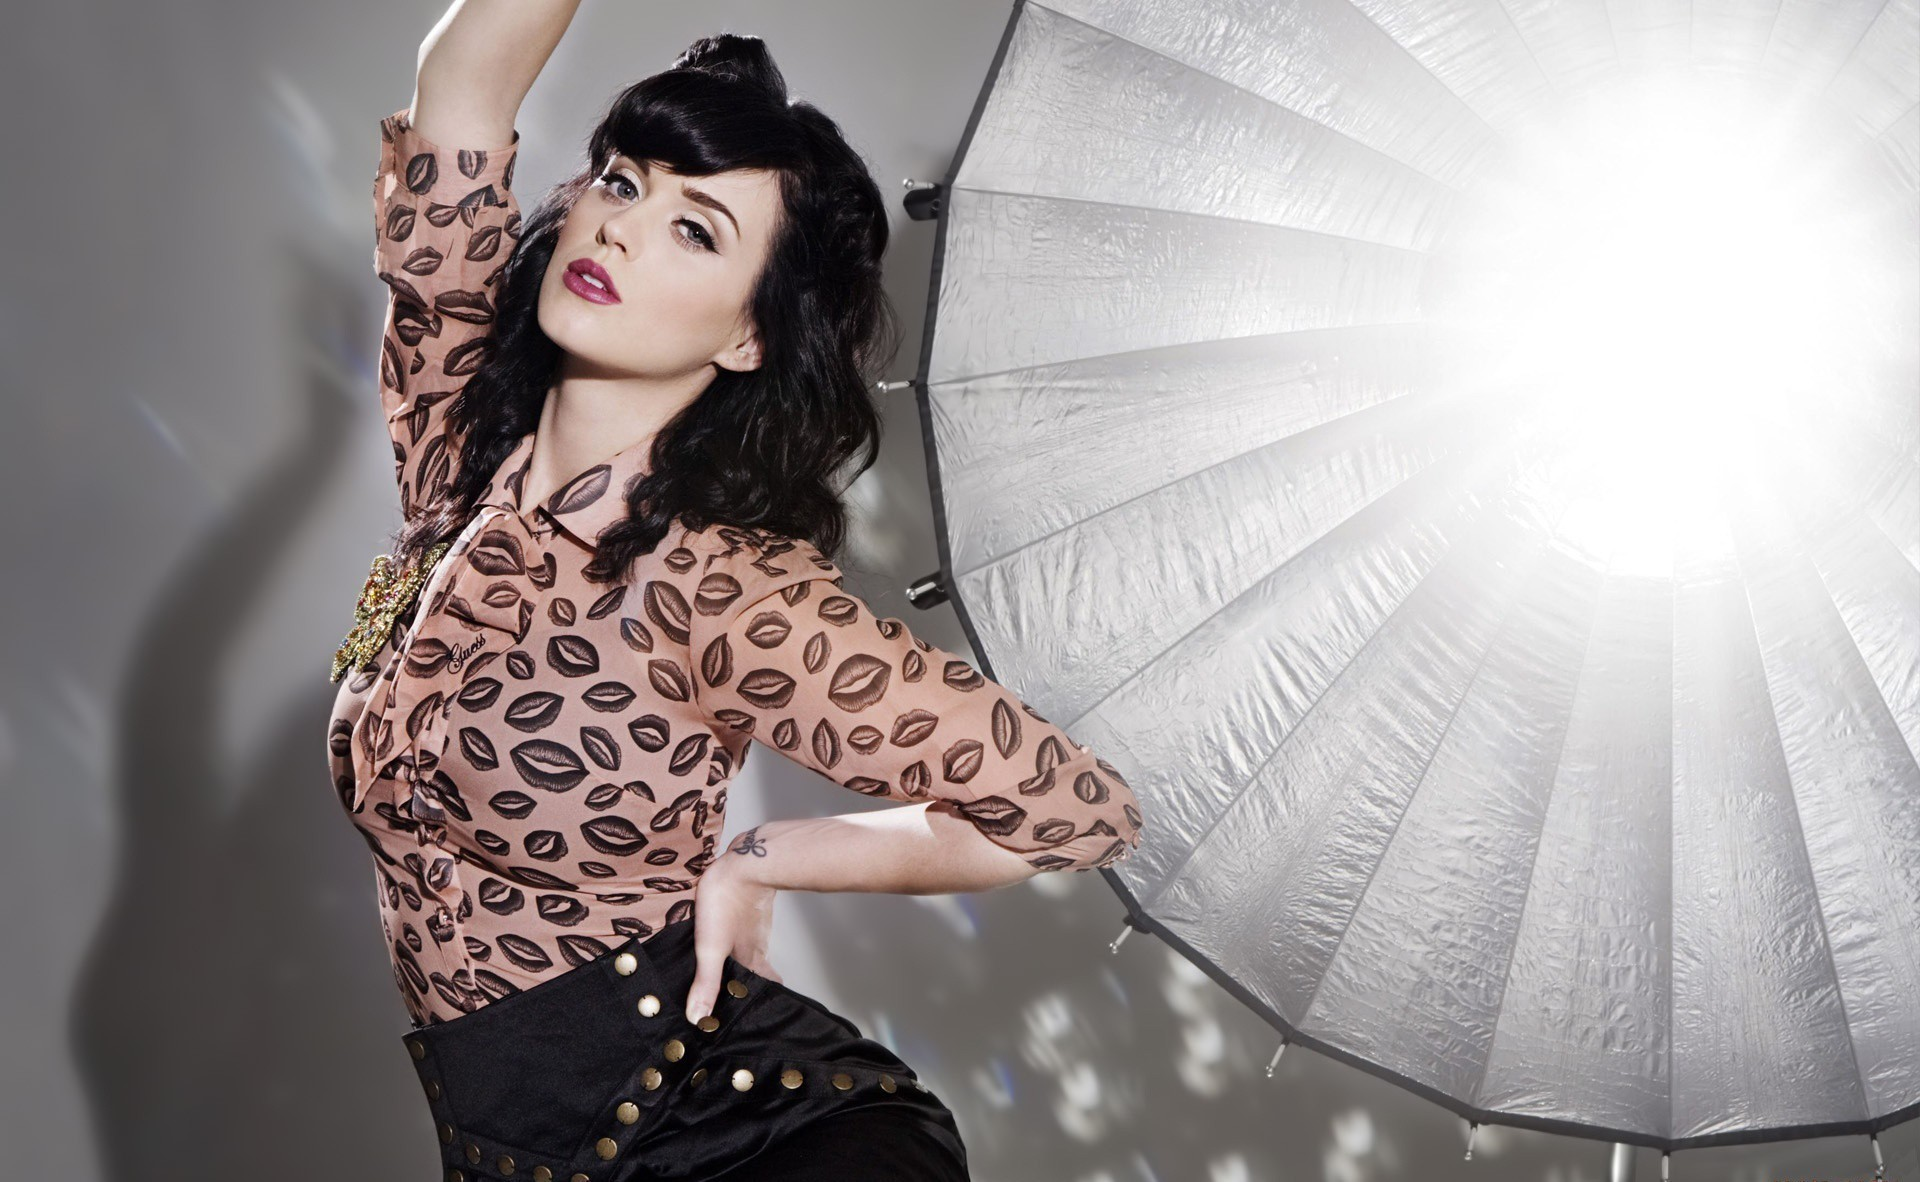 Katy Perry Wallpaper 20